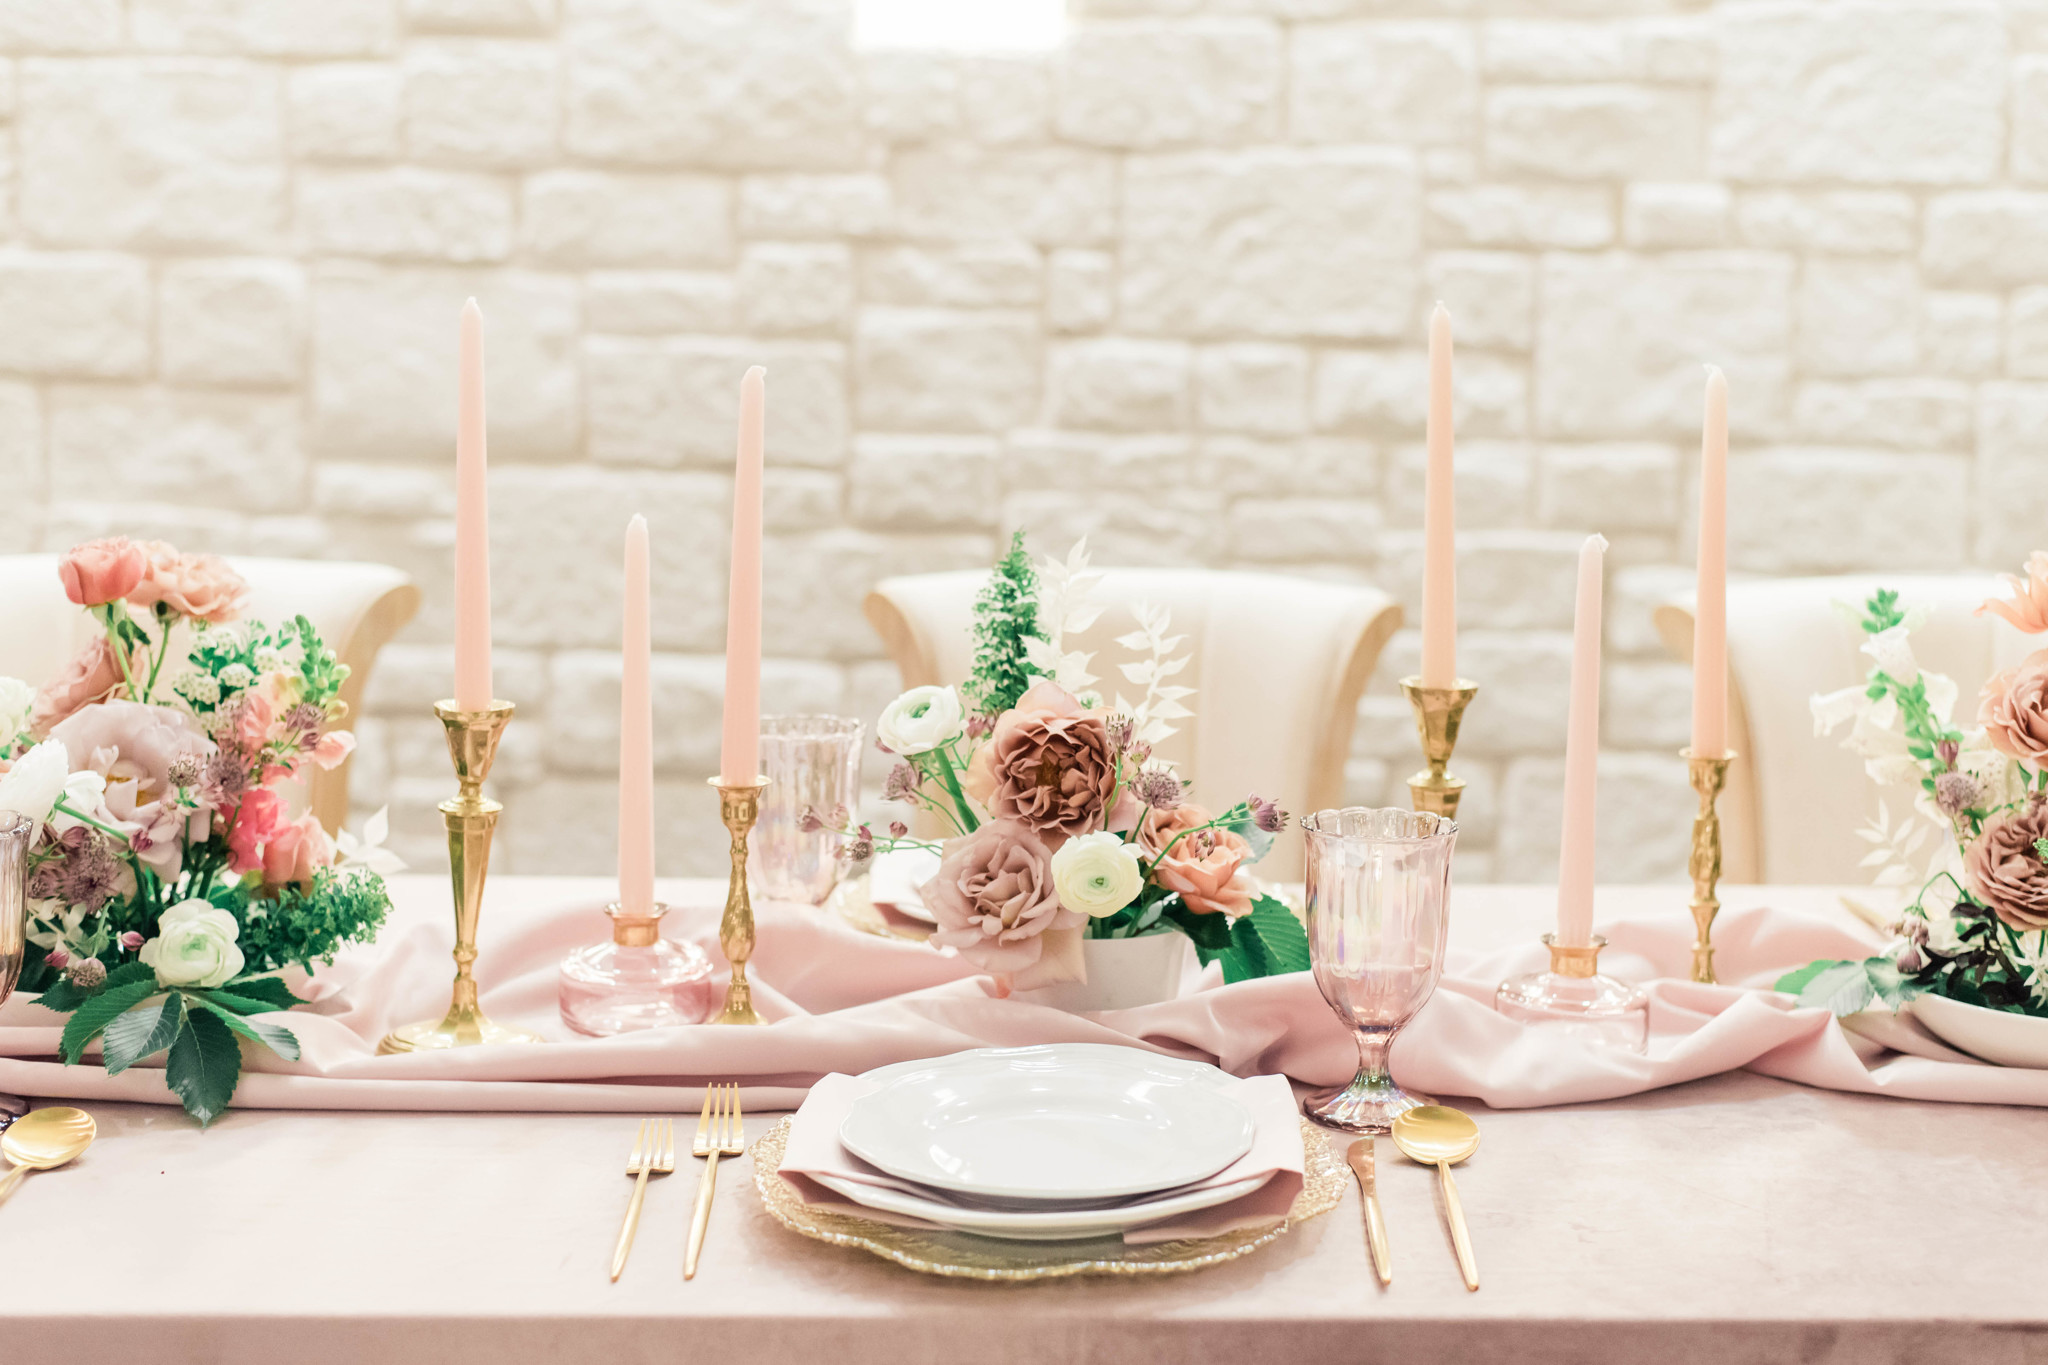 Mauve wedding tablescape: Whimsical mauve wedding inspiration on Alexa Kay Events. See more romantic wedding ideas at alexakayevents.com!